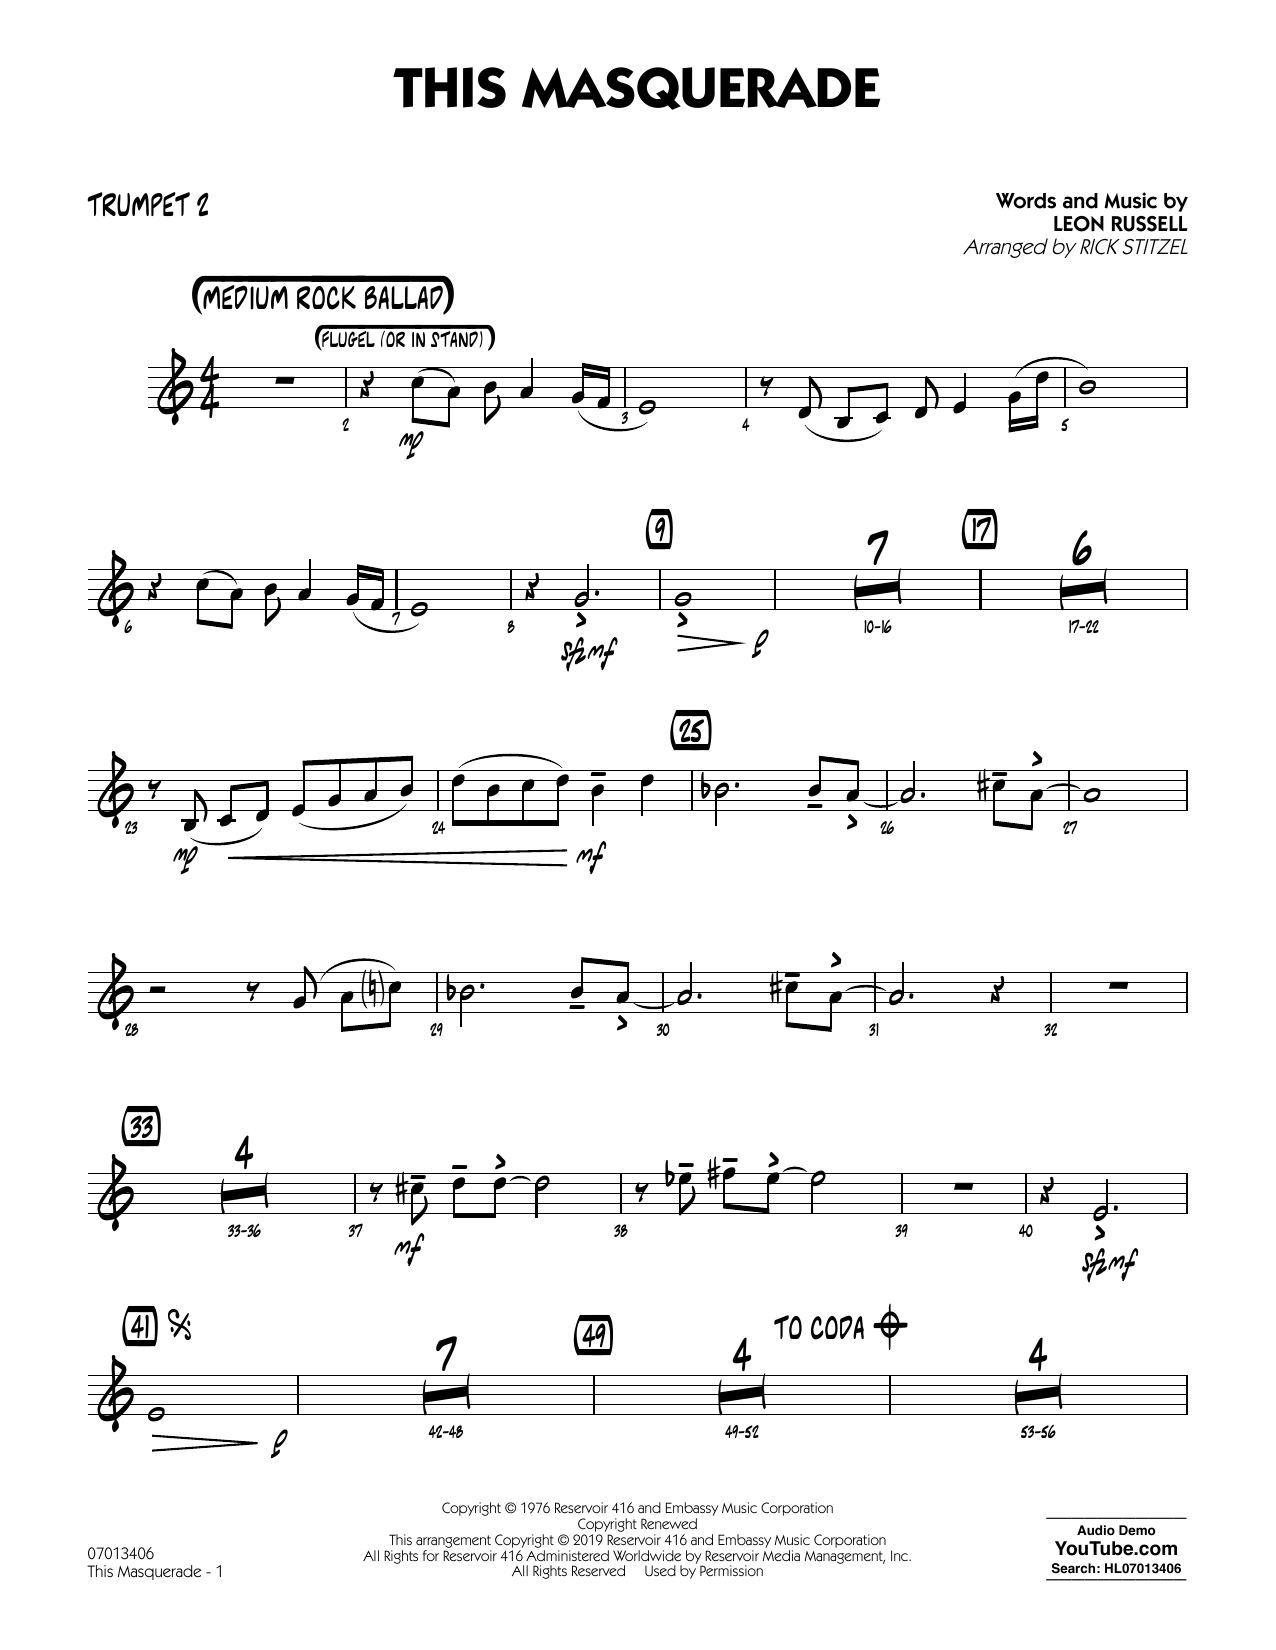 Leon Russell This Masquerade (arr. Rick Stitzel) - Trumpet 2 sheet music notes and chords. Download Printable PDF.